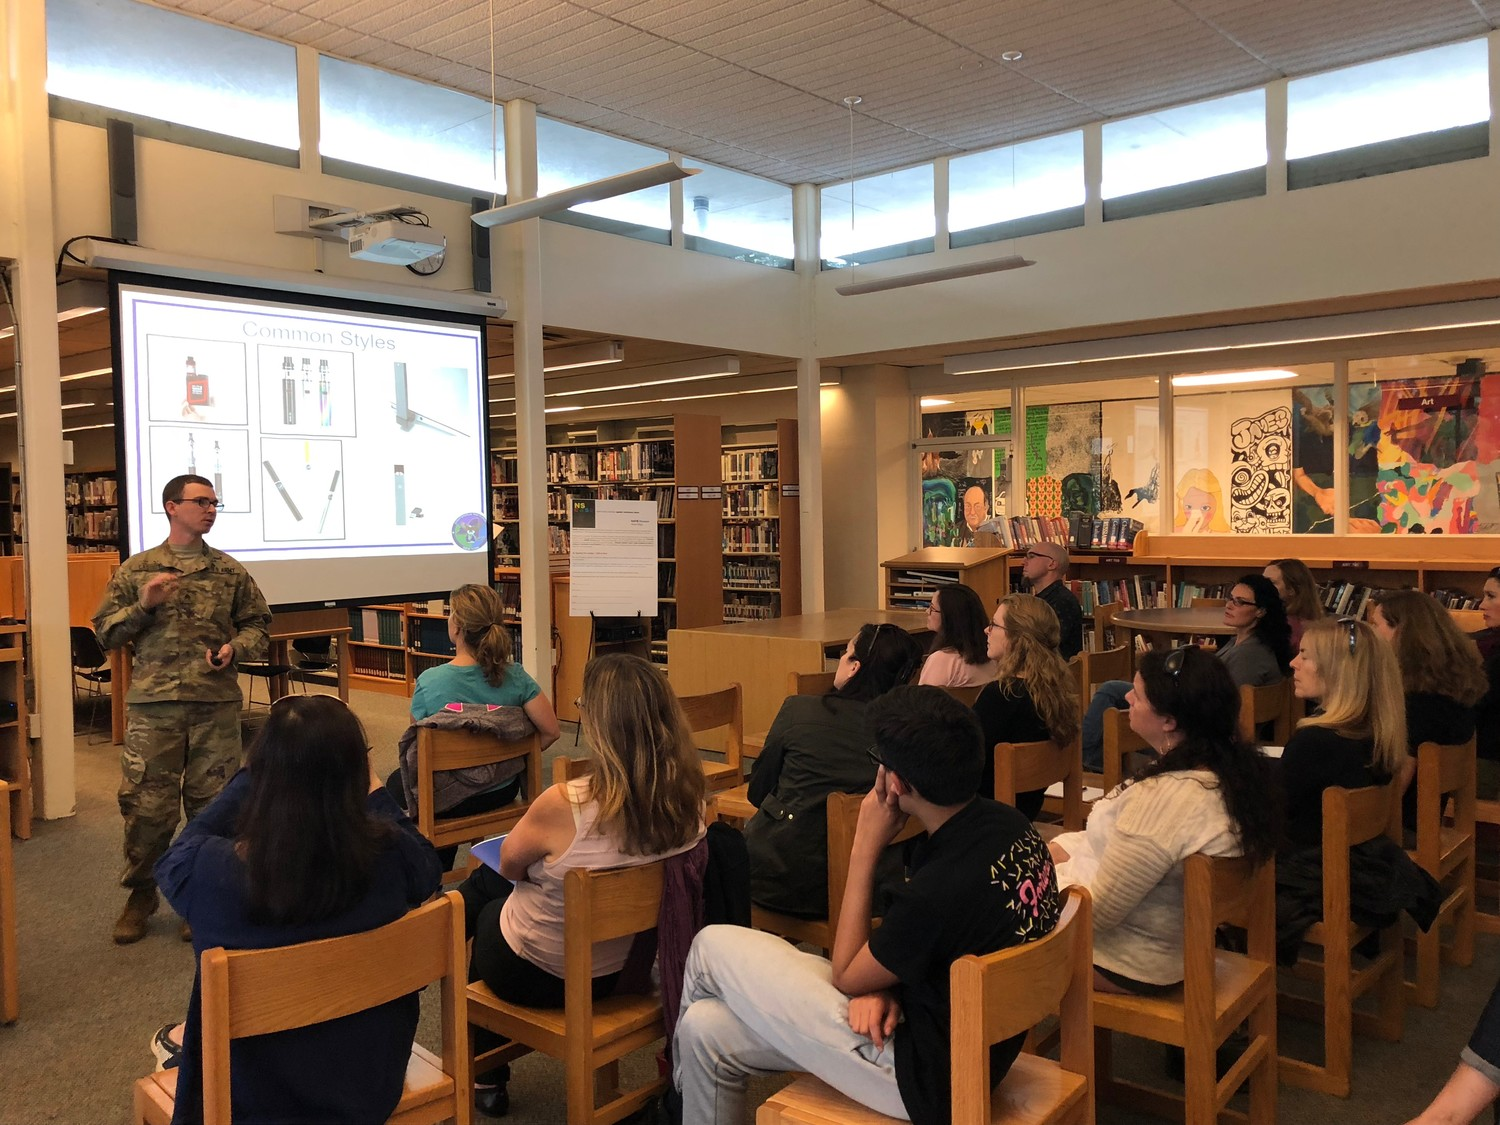 Sgt. Sean Cassidy of the National Guard Counter Drug Task Force shared some facts about vaping with the North Shore School District community.